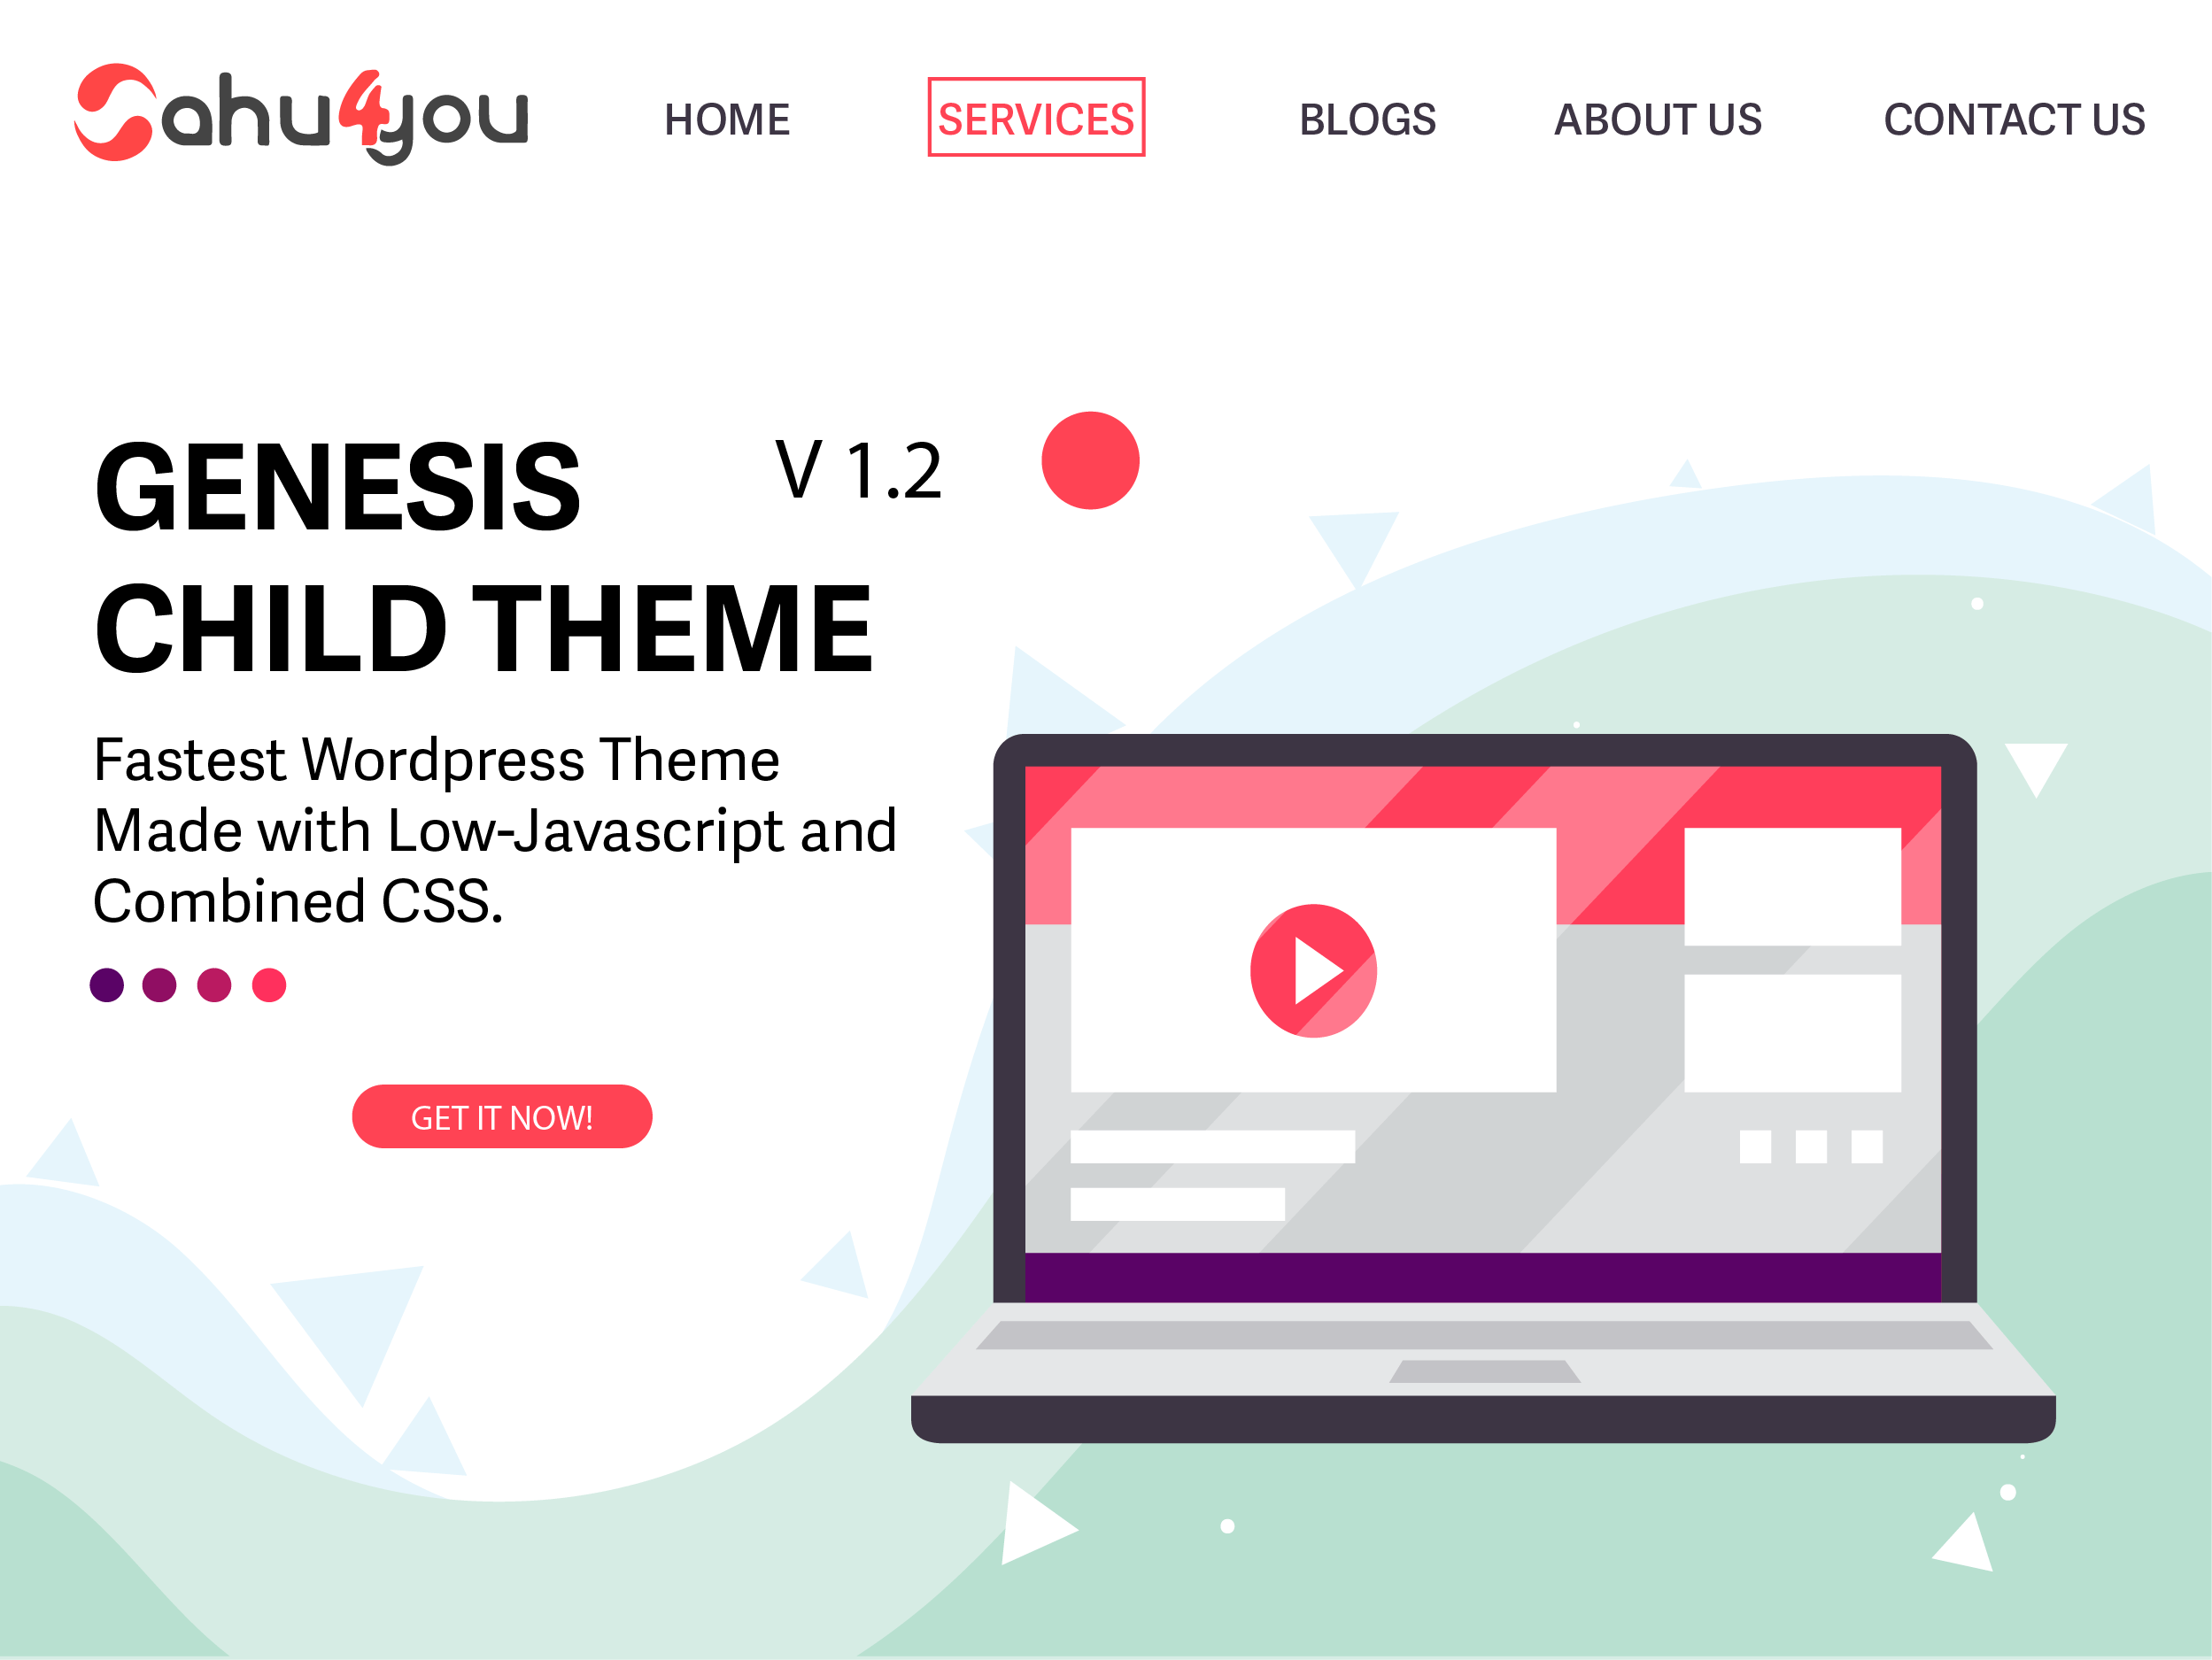 Sahu4You Lite Wordpress Theme